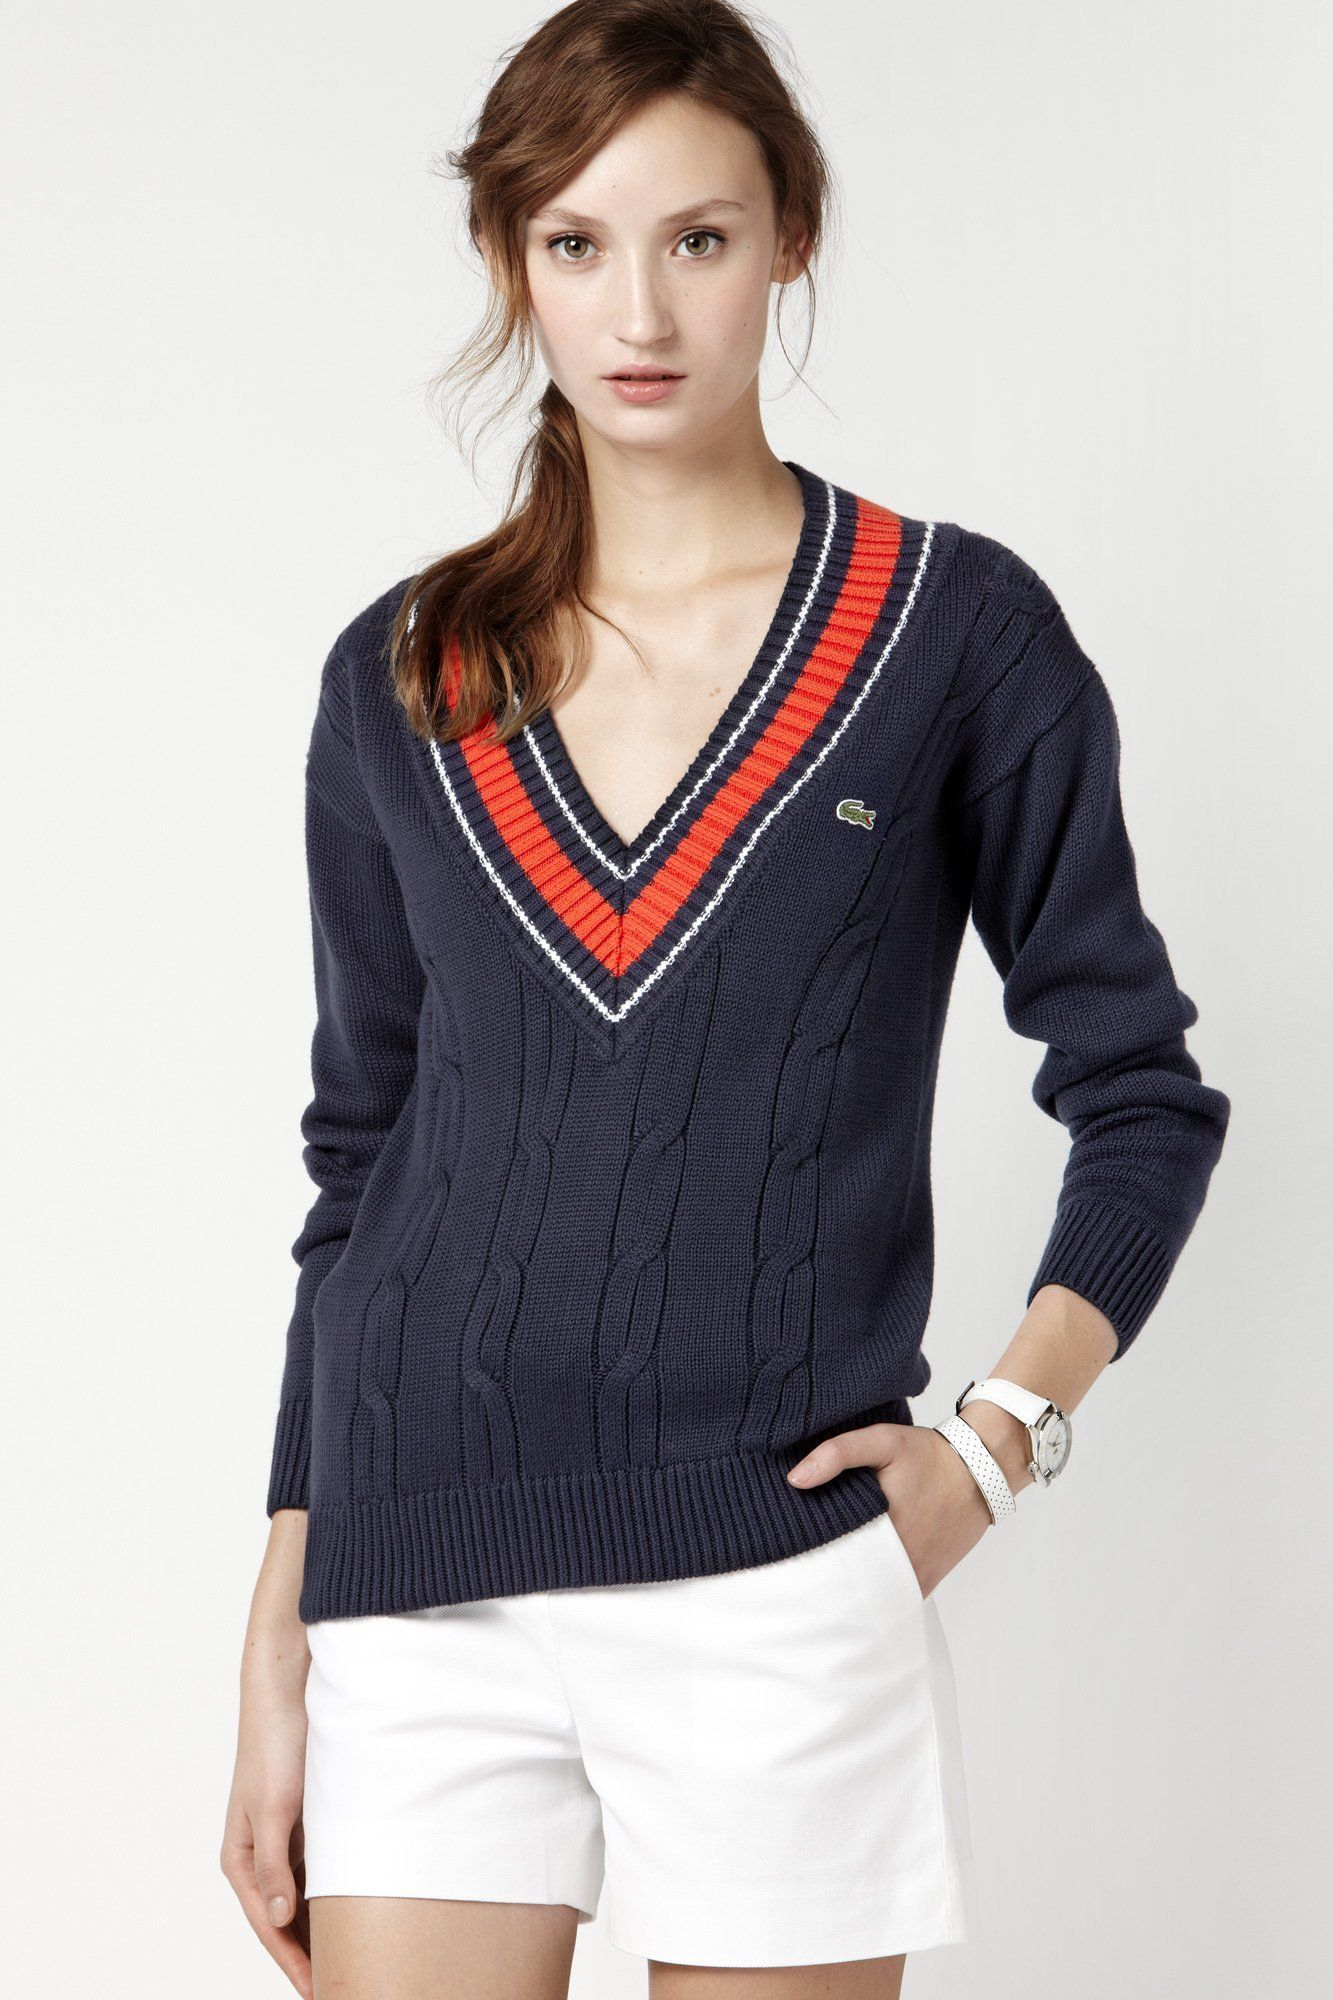 Lacoste Long Sleeve Cotton Cable Knit Tipped V-neck Sweater : Sweaters